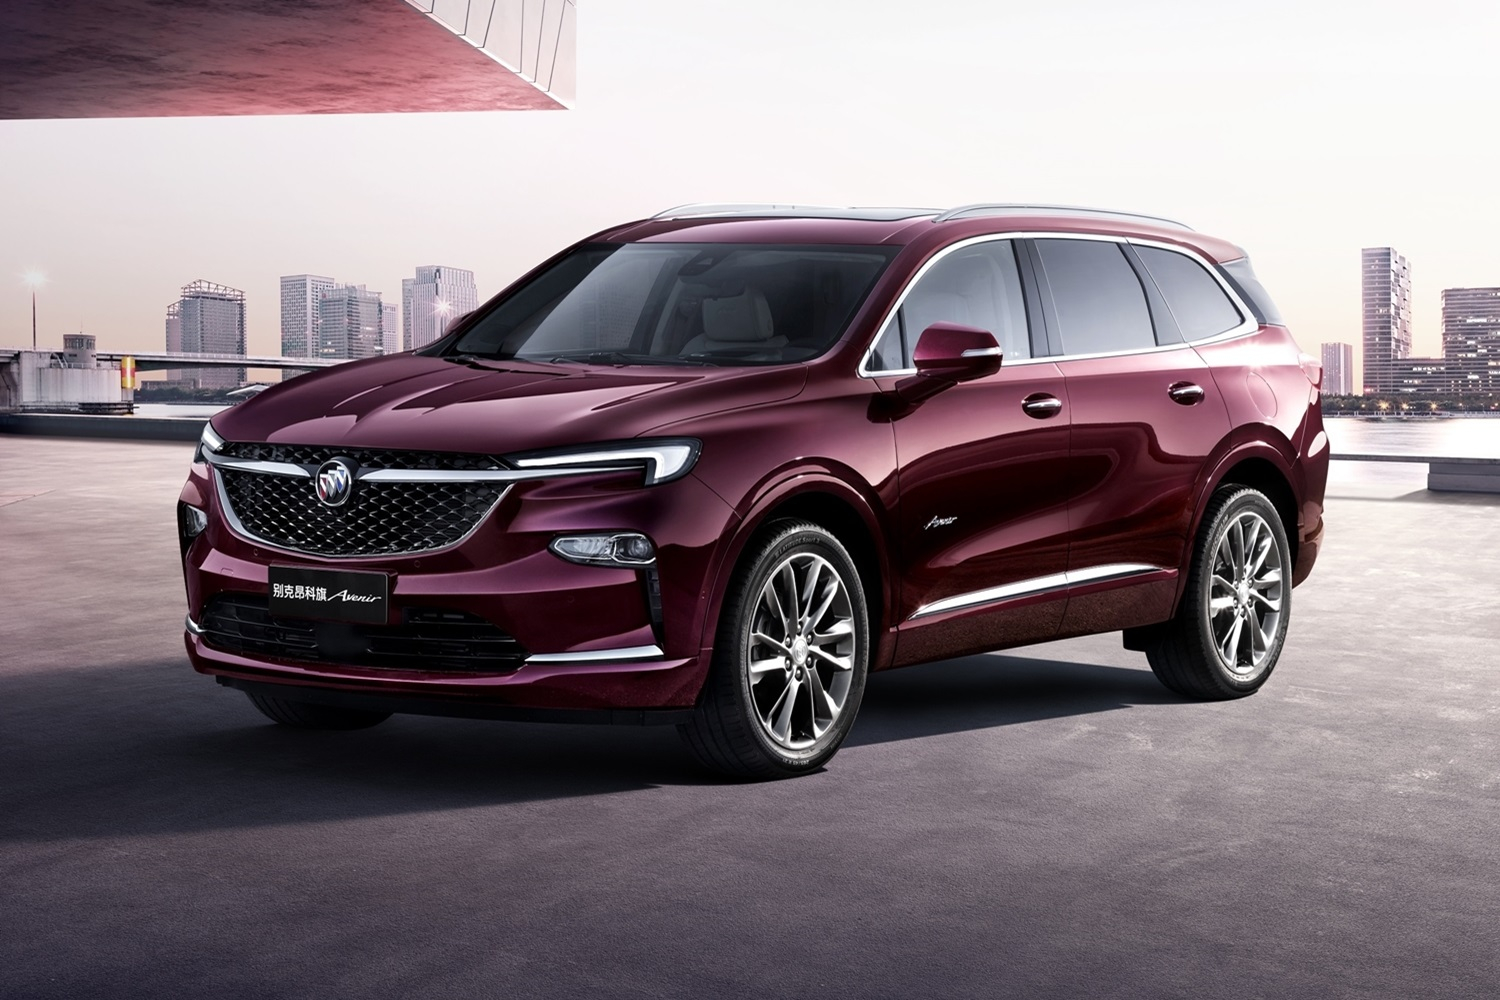 Gm Shows All-New China-Spec Buick Enclave Avenir | Gm Authority New 2022 Buick Enclave Avenir Standard Features, Used, Reviews